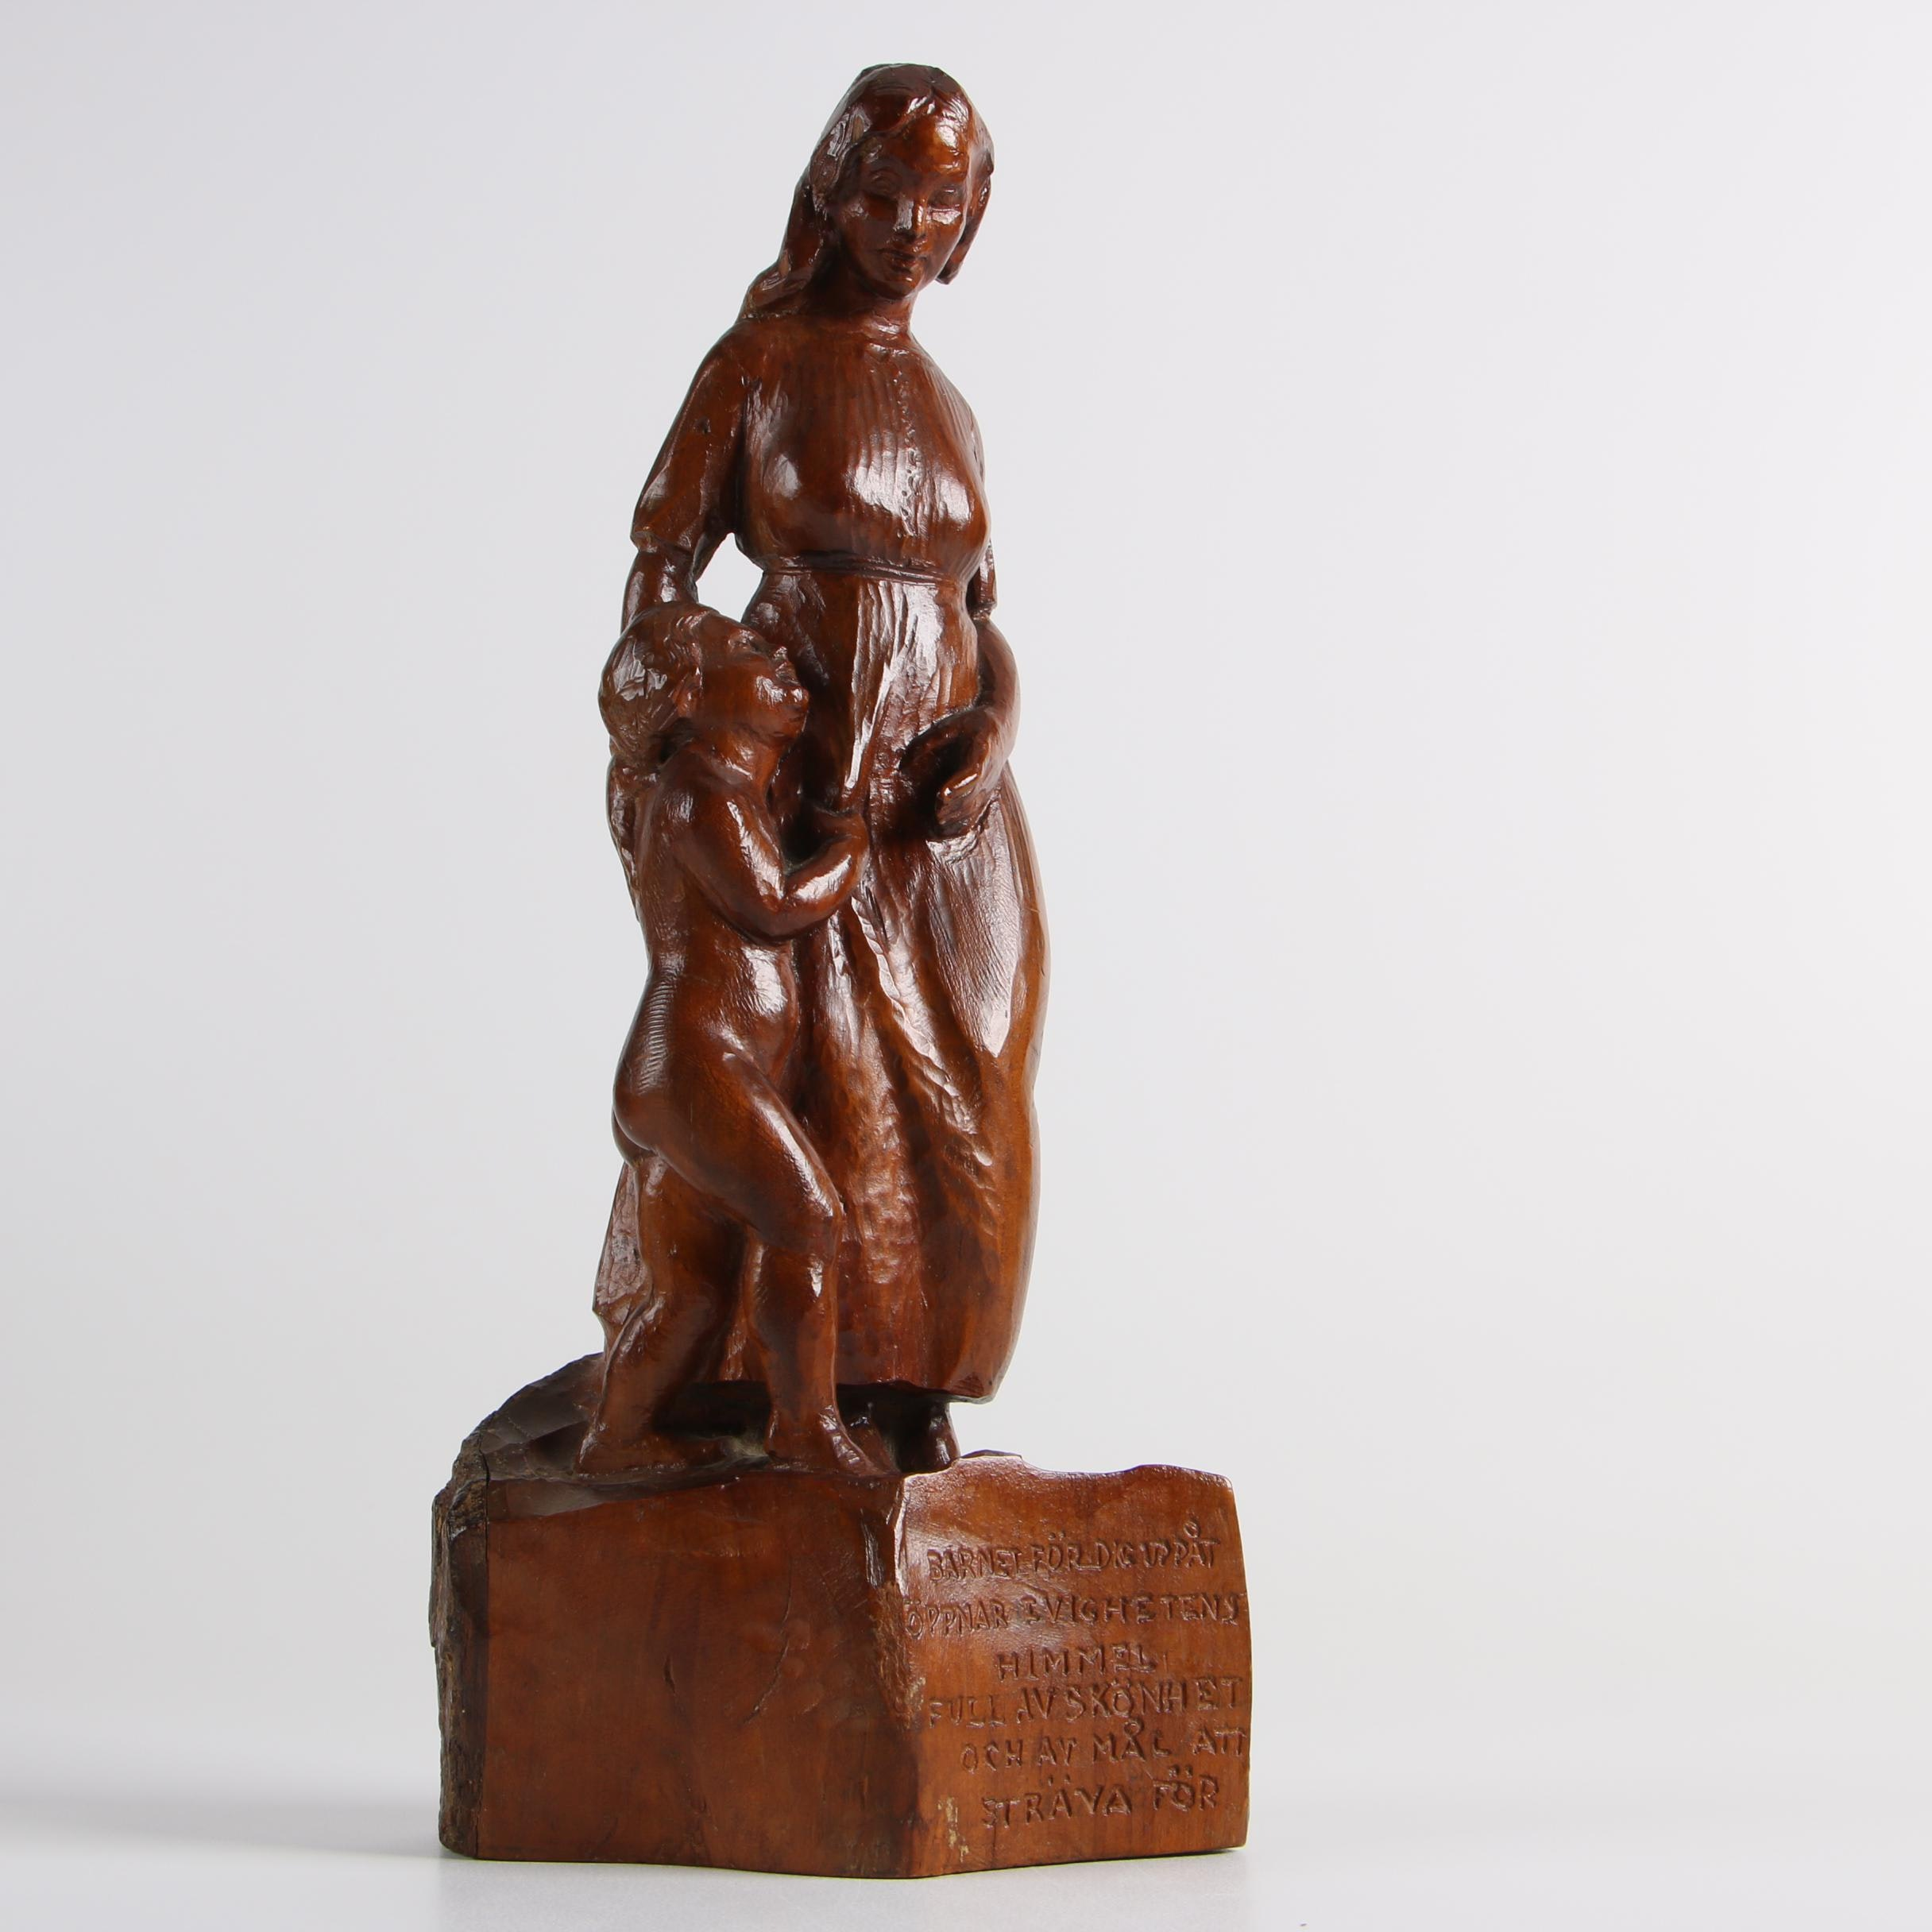 N. Arthur Sandin 1938 Mother and Child Wooden Carving with Inscription